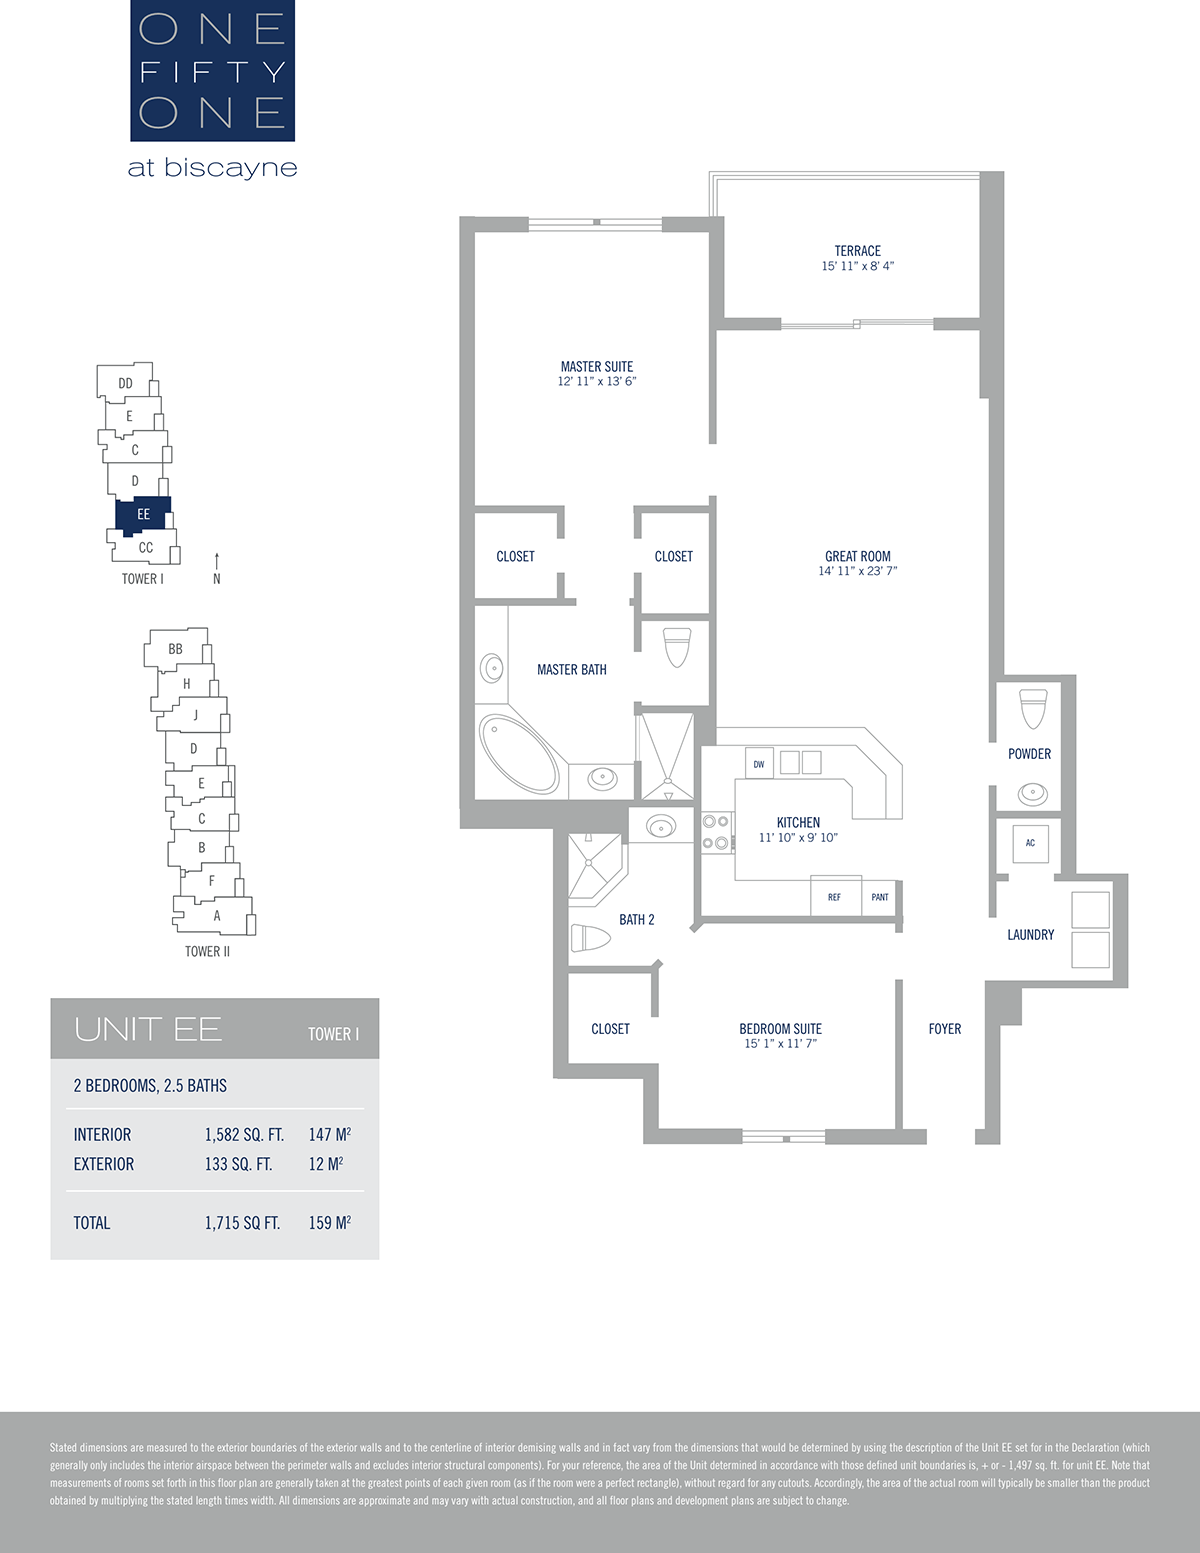 One Fifty One At Biscayne - Floorplan 16